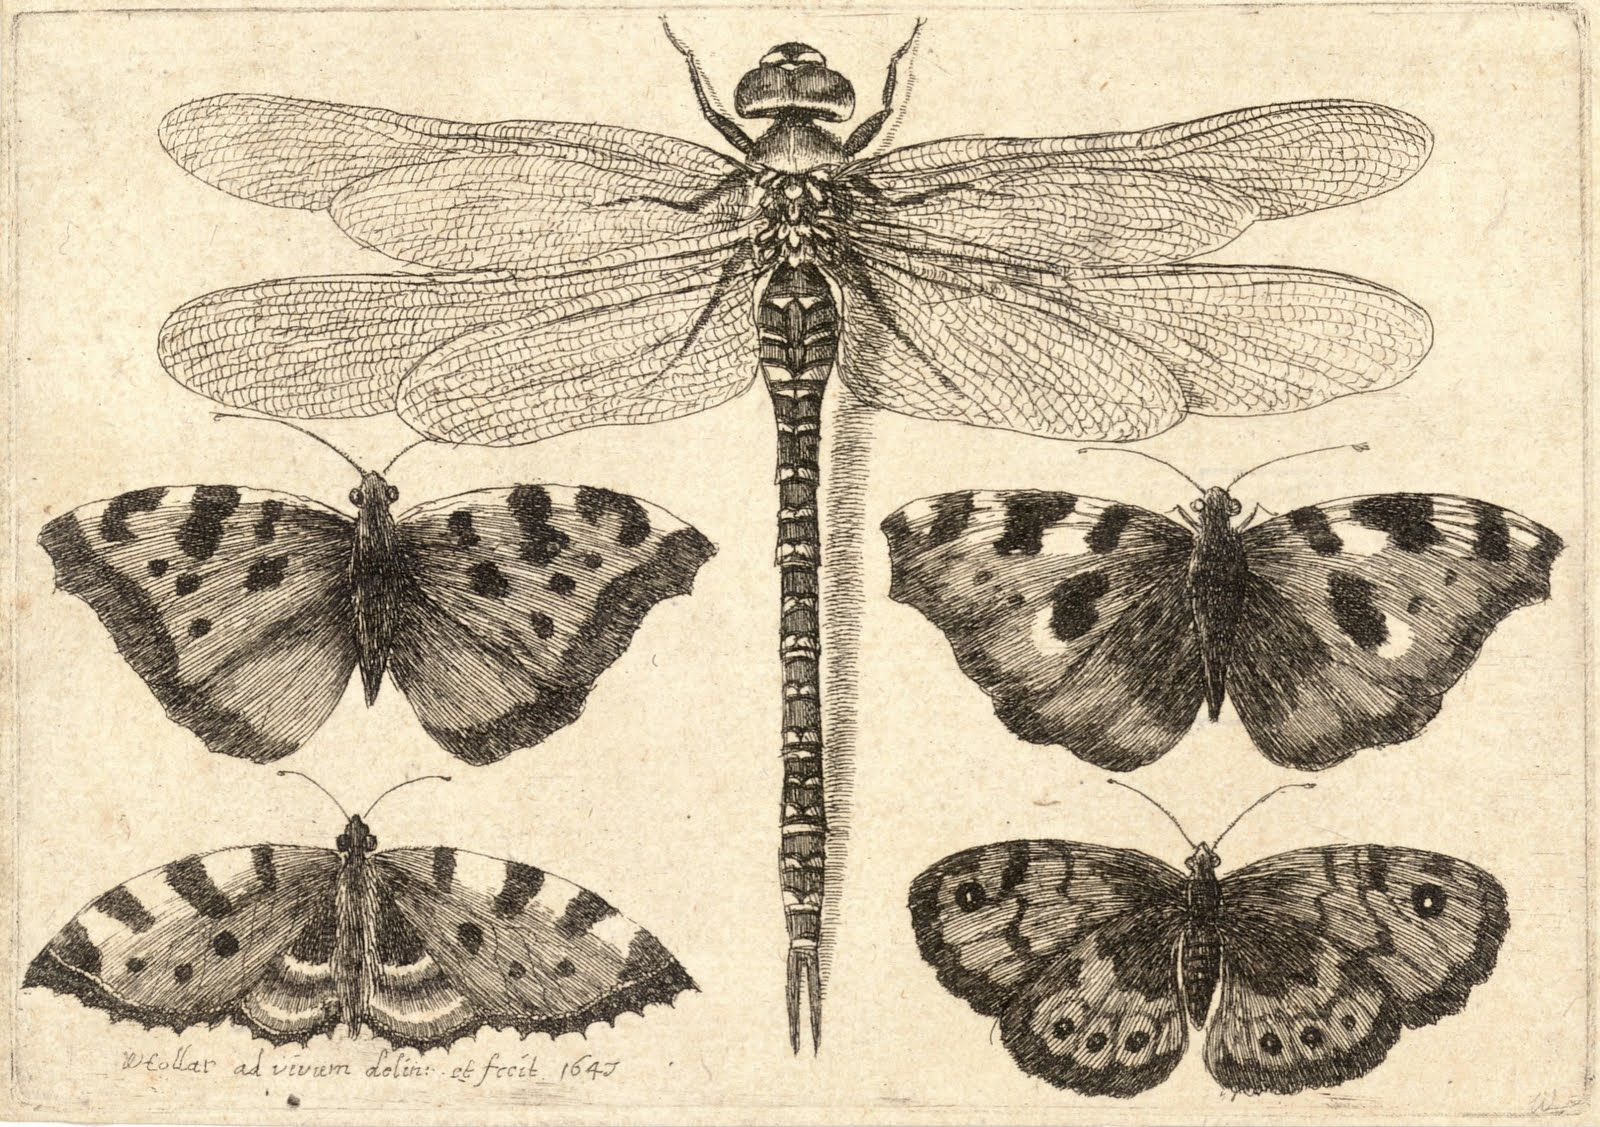 Vintage Ephemera: Etching of butterflies and dragonfly - 1647